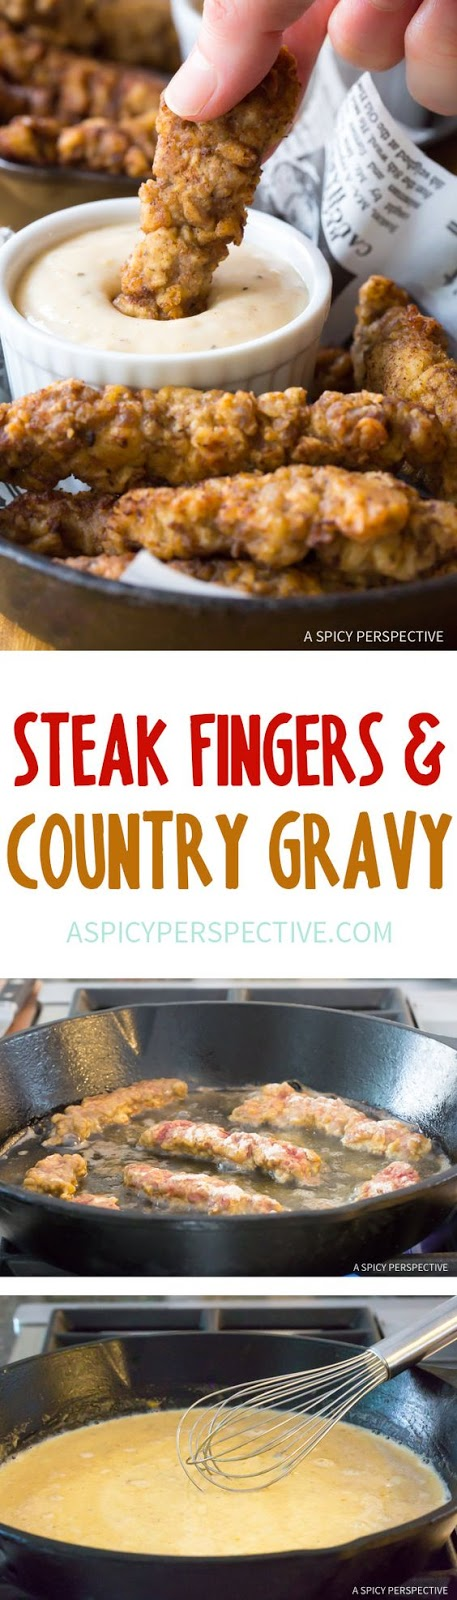 Steak Fingers with Country Gravy